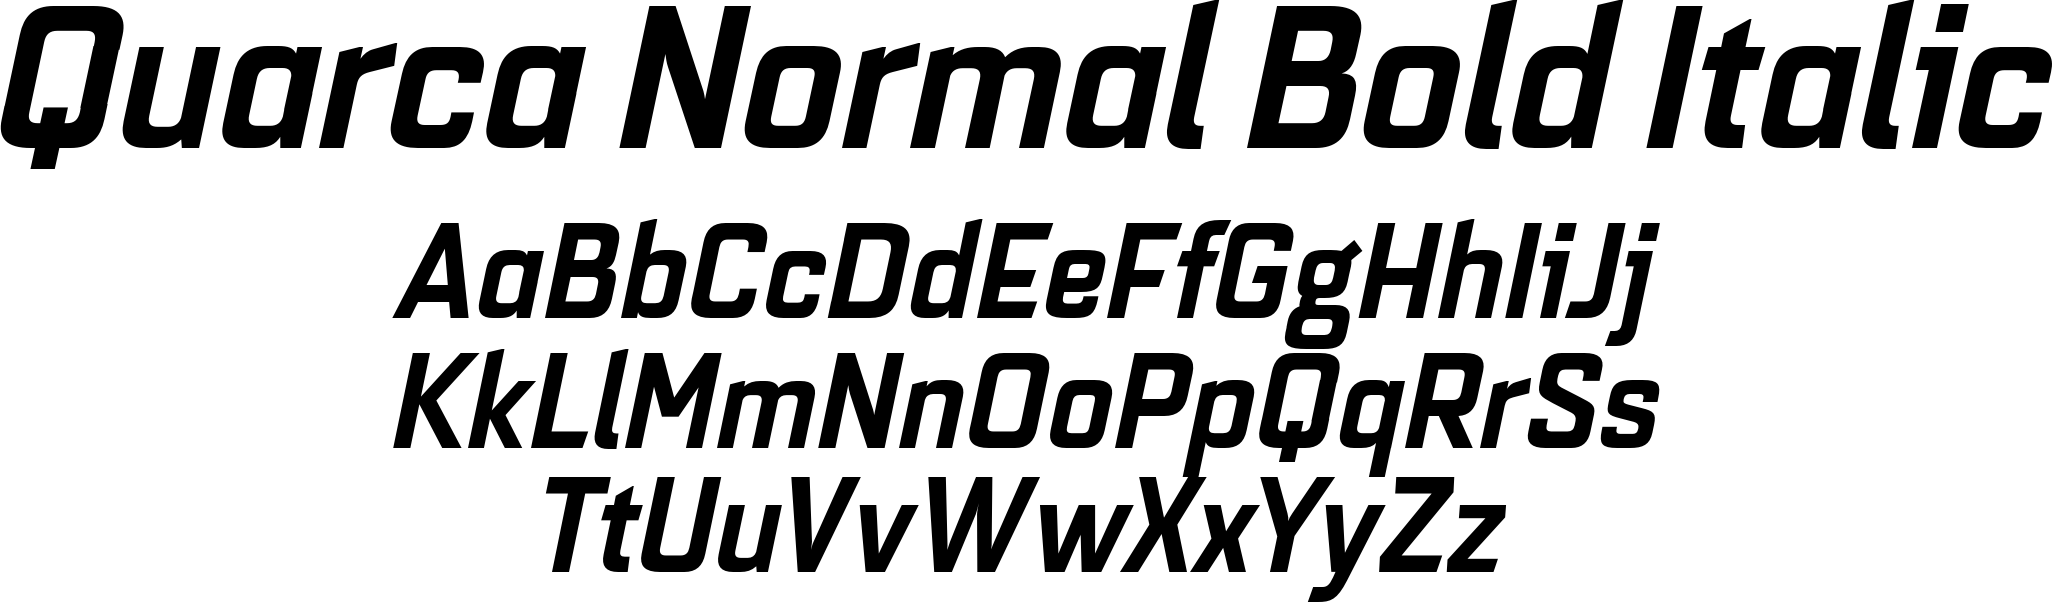 Quarca Normal Bold Italic